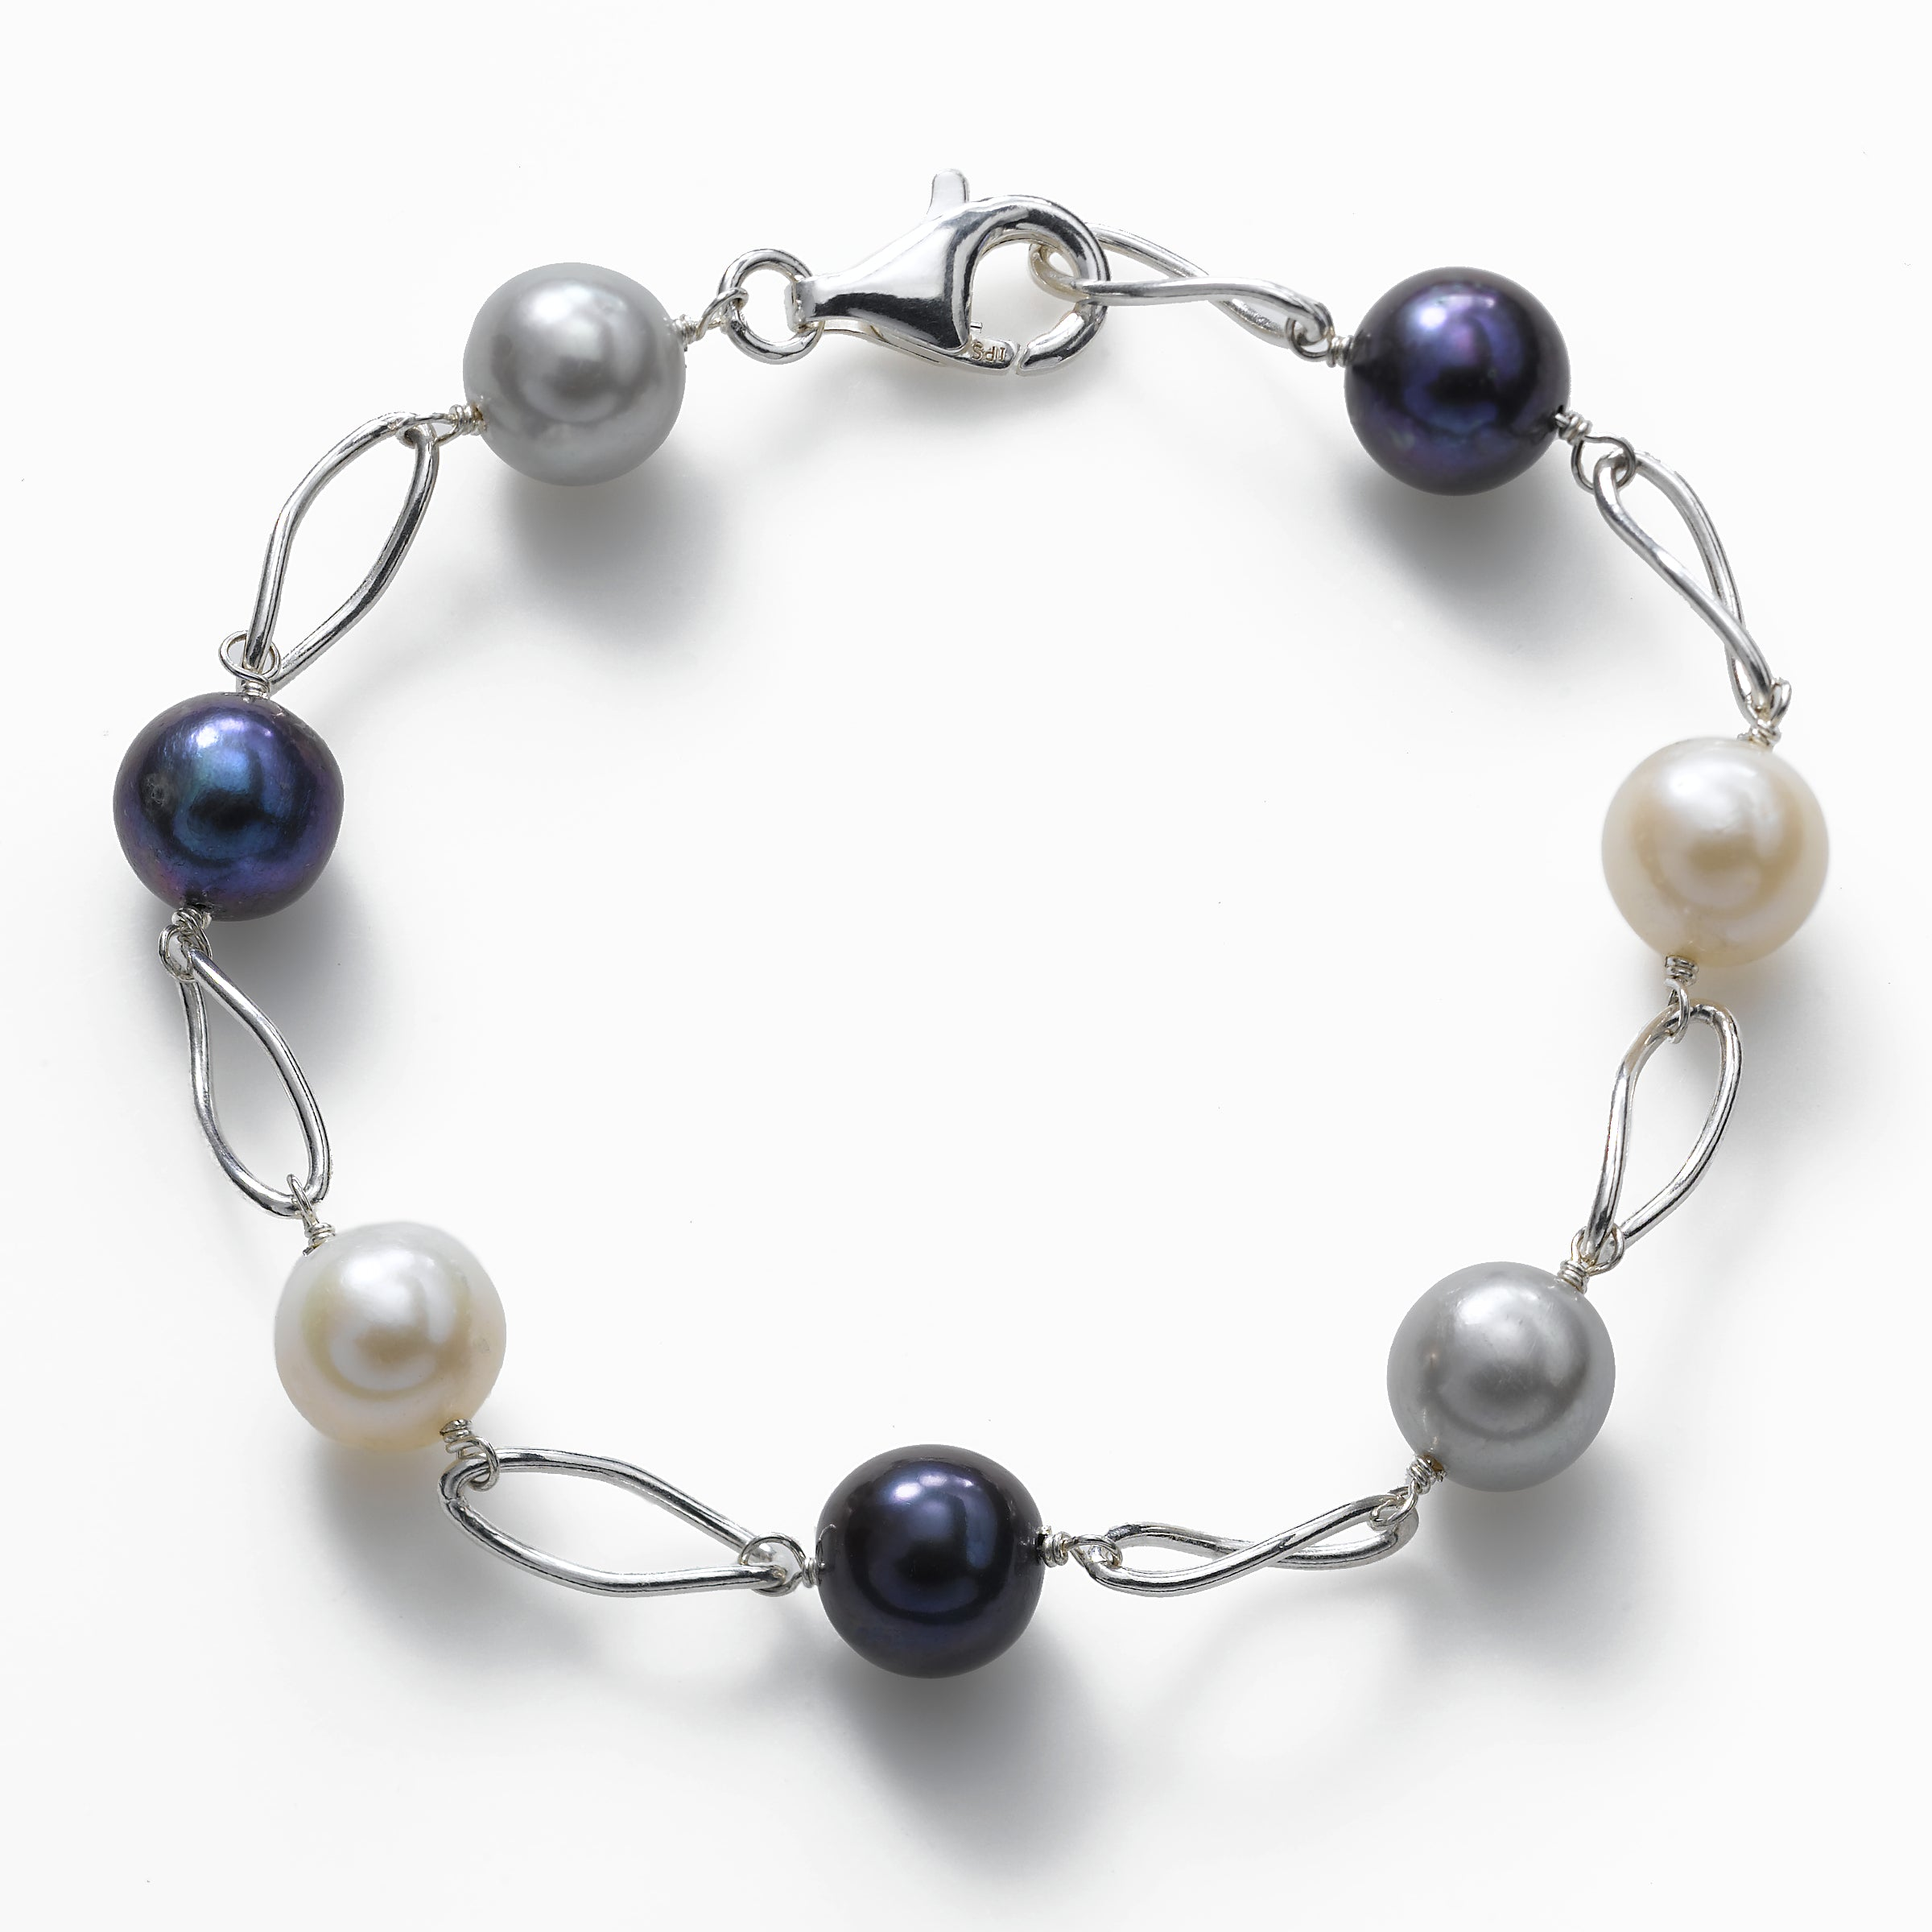 Gray and Black Cultured Freshwater Pearl Bracelet, Sterling Silver